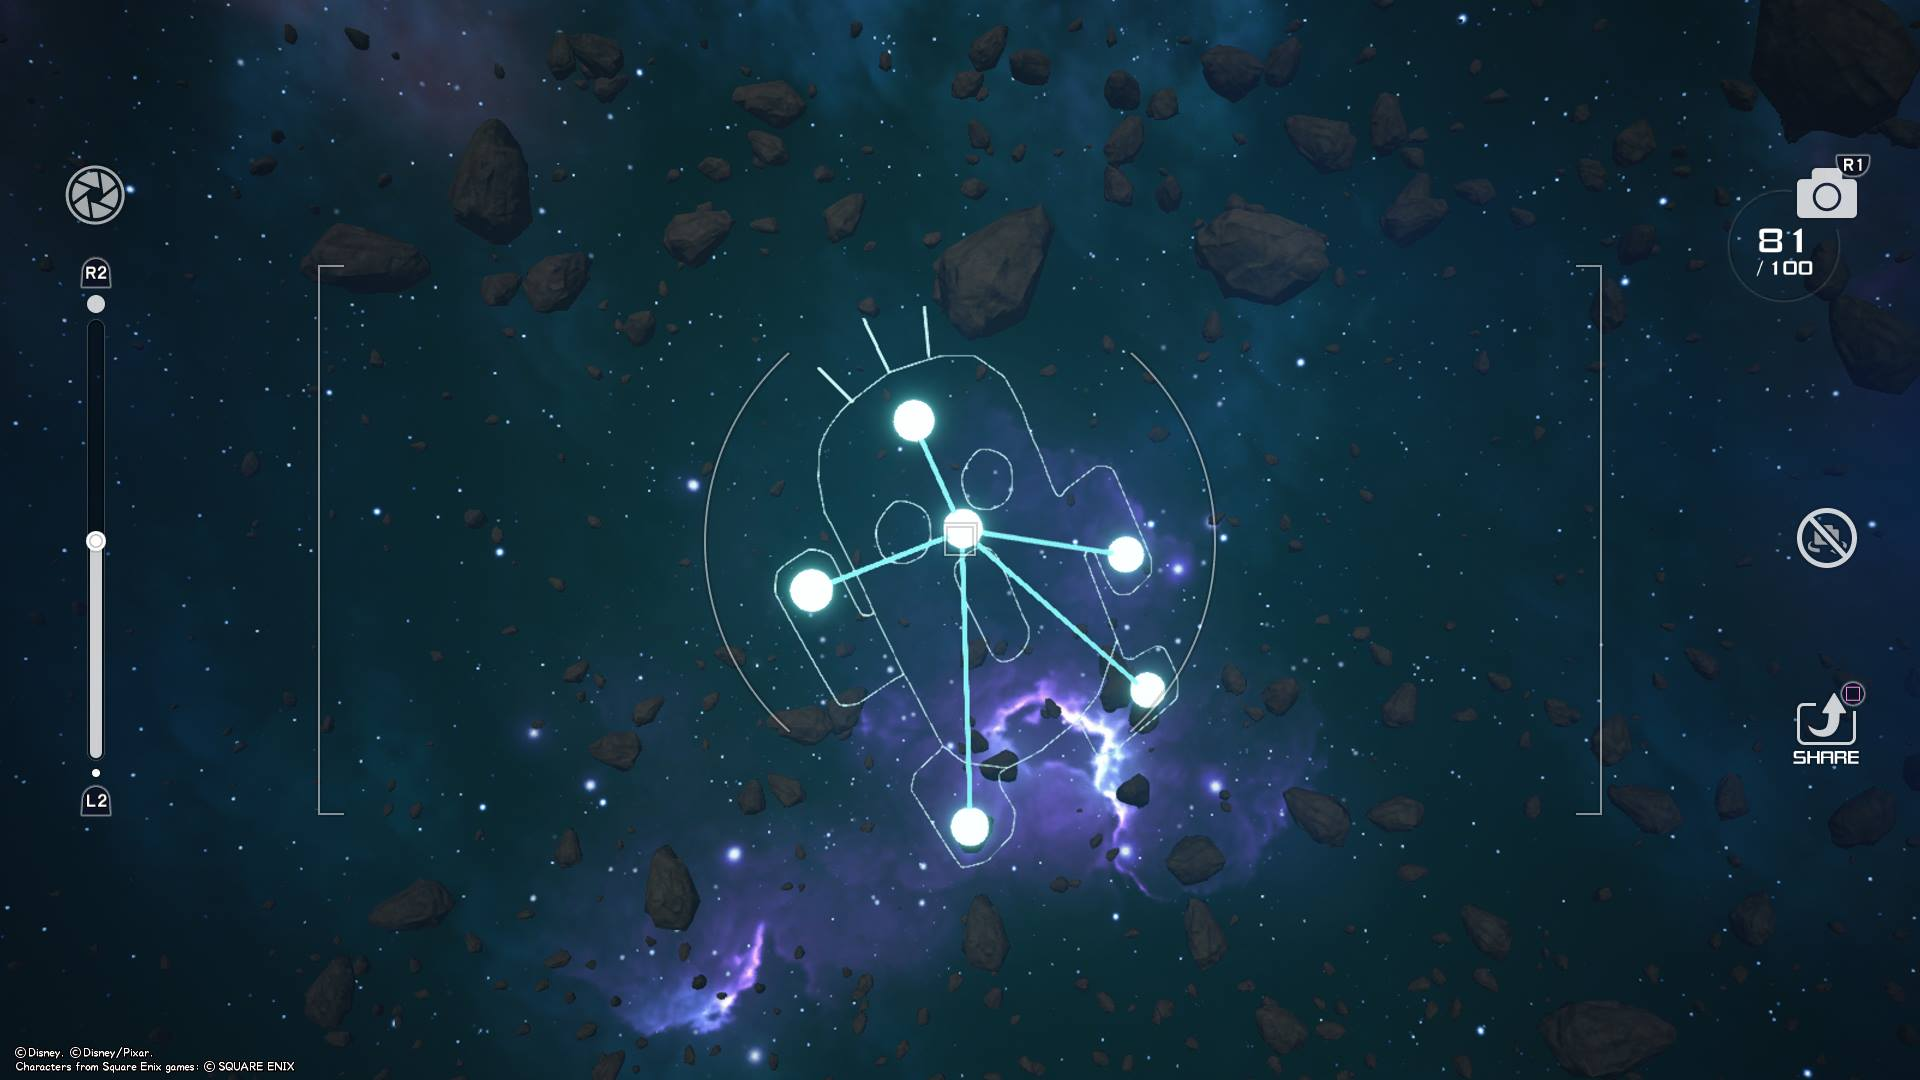 The Cactuar Constellation is located near the Kingdom of Corona world in the Starlight Way galaxy of Kingdom Hearts 3.